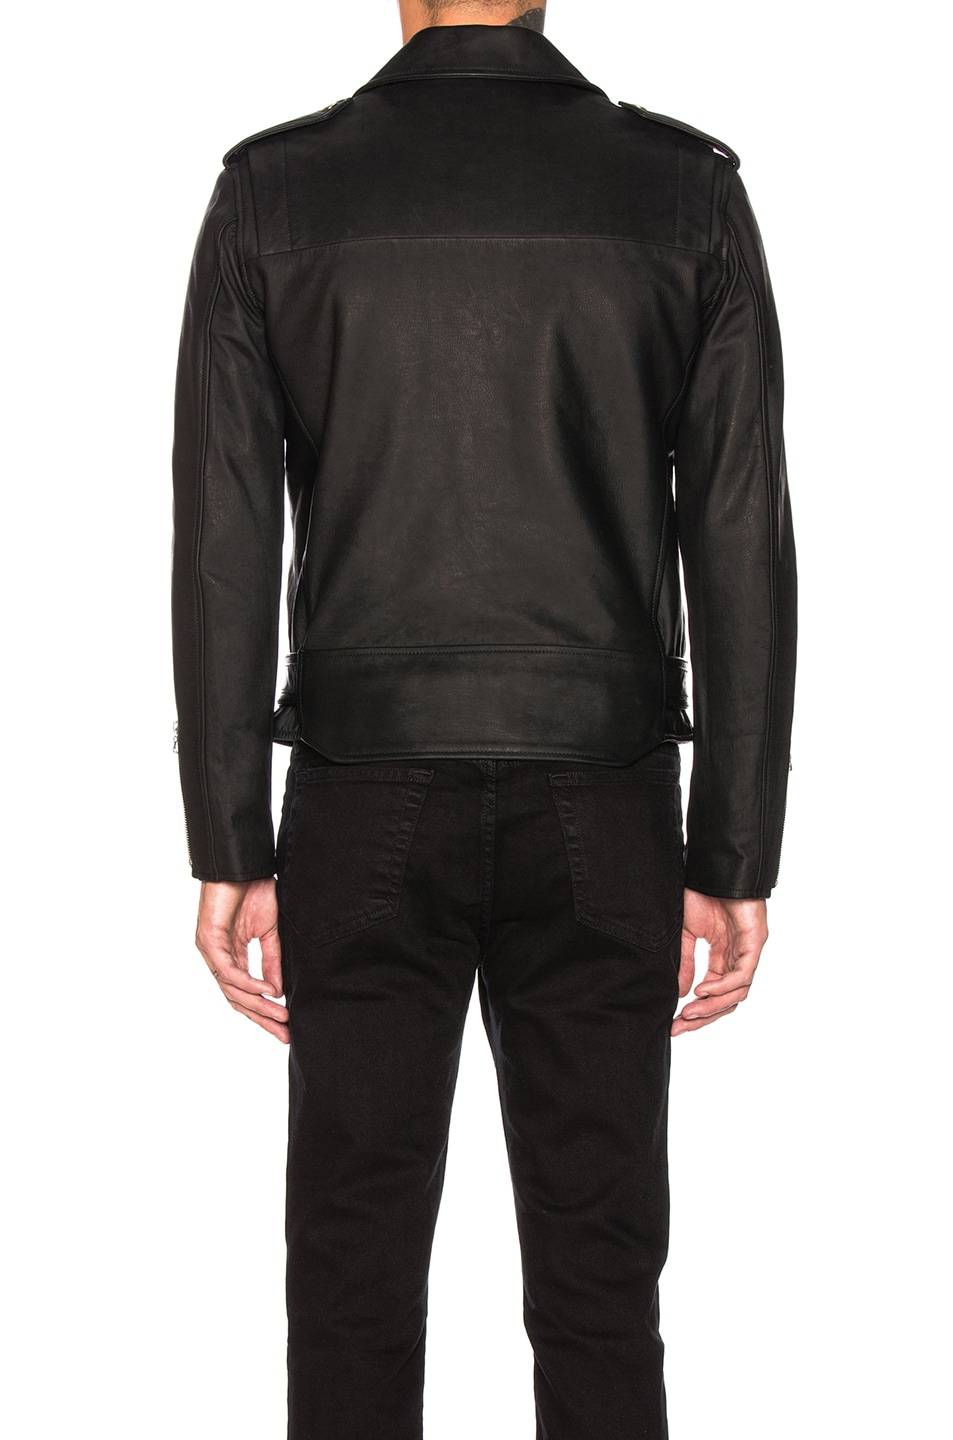 Image 5 of JOHN ELLIOTT Blackmeans Rider's Jacket in Black